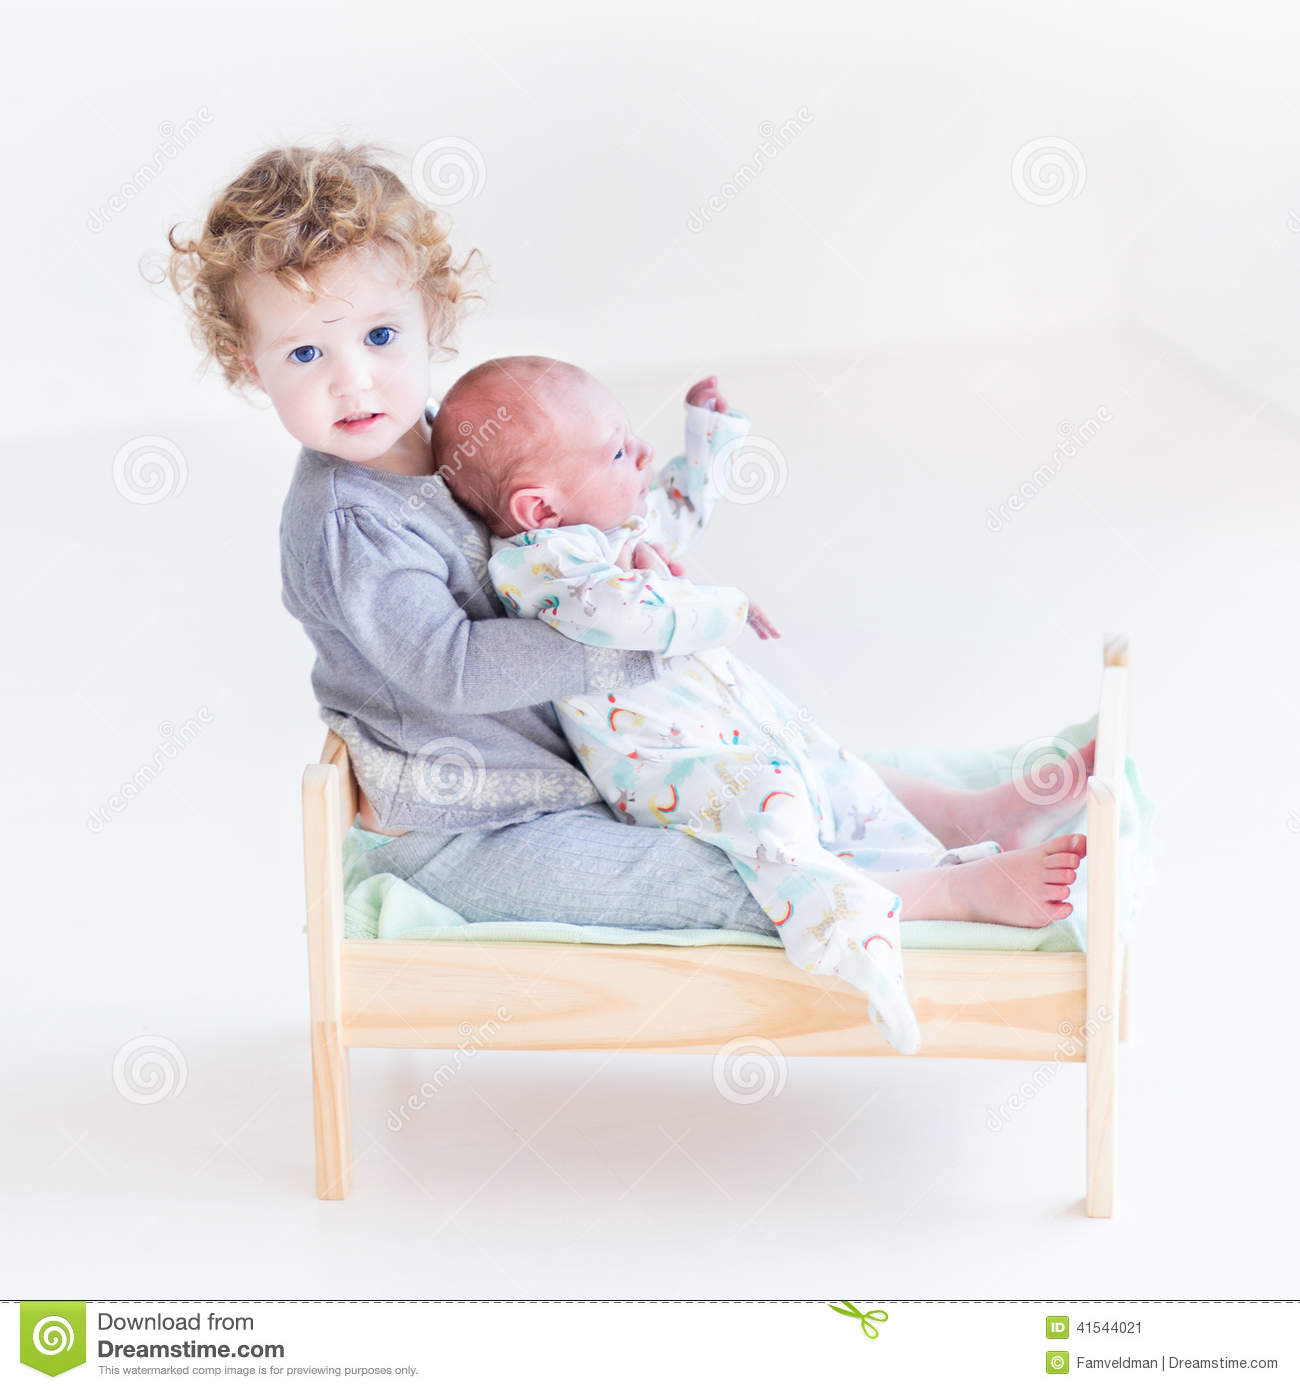 toddler girl with newborn baby brother in toy bed stock image image 41544021. Black Bedroom Furniture Sets. Home Design Ideas